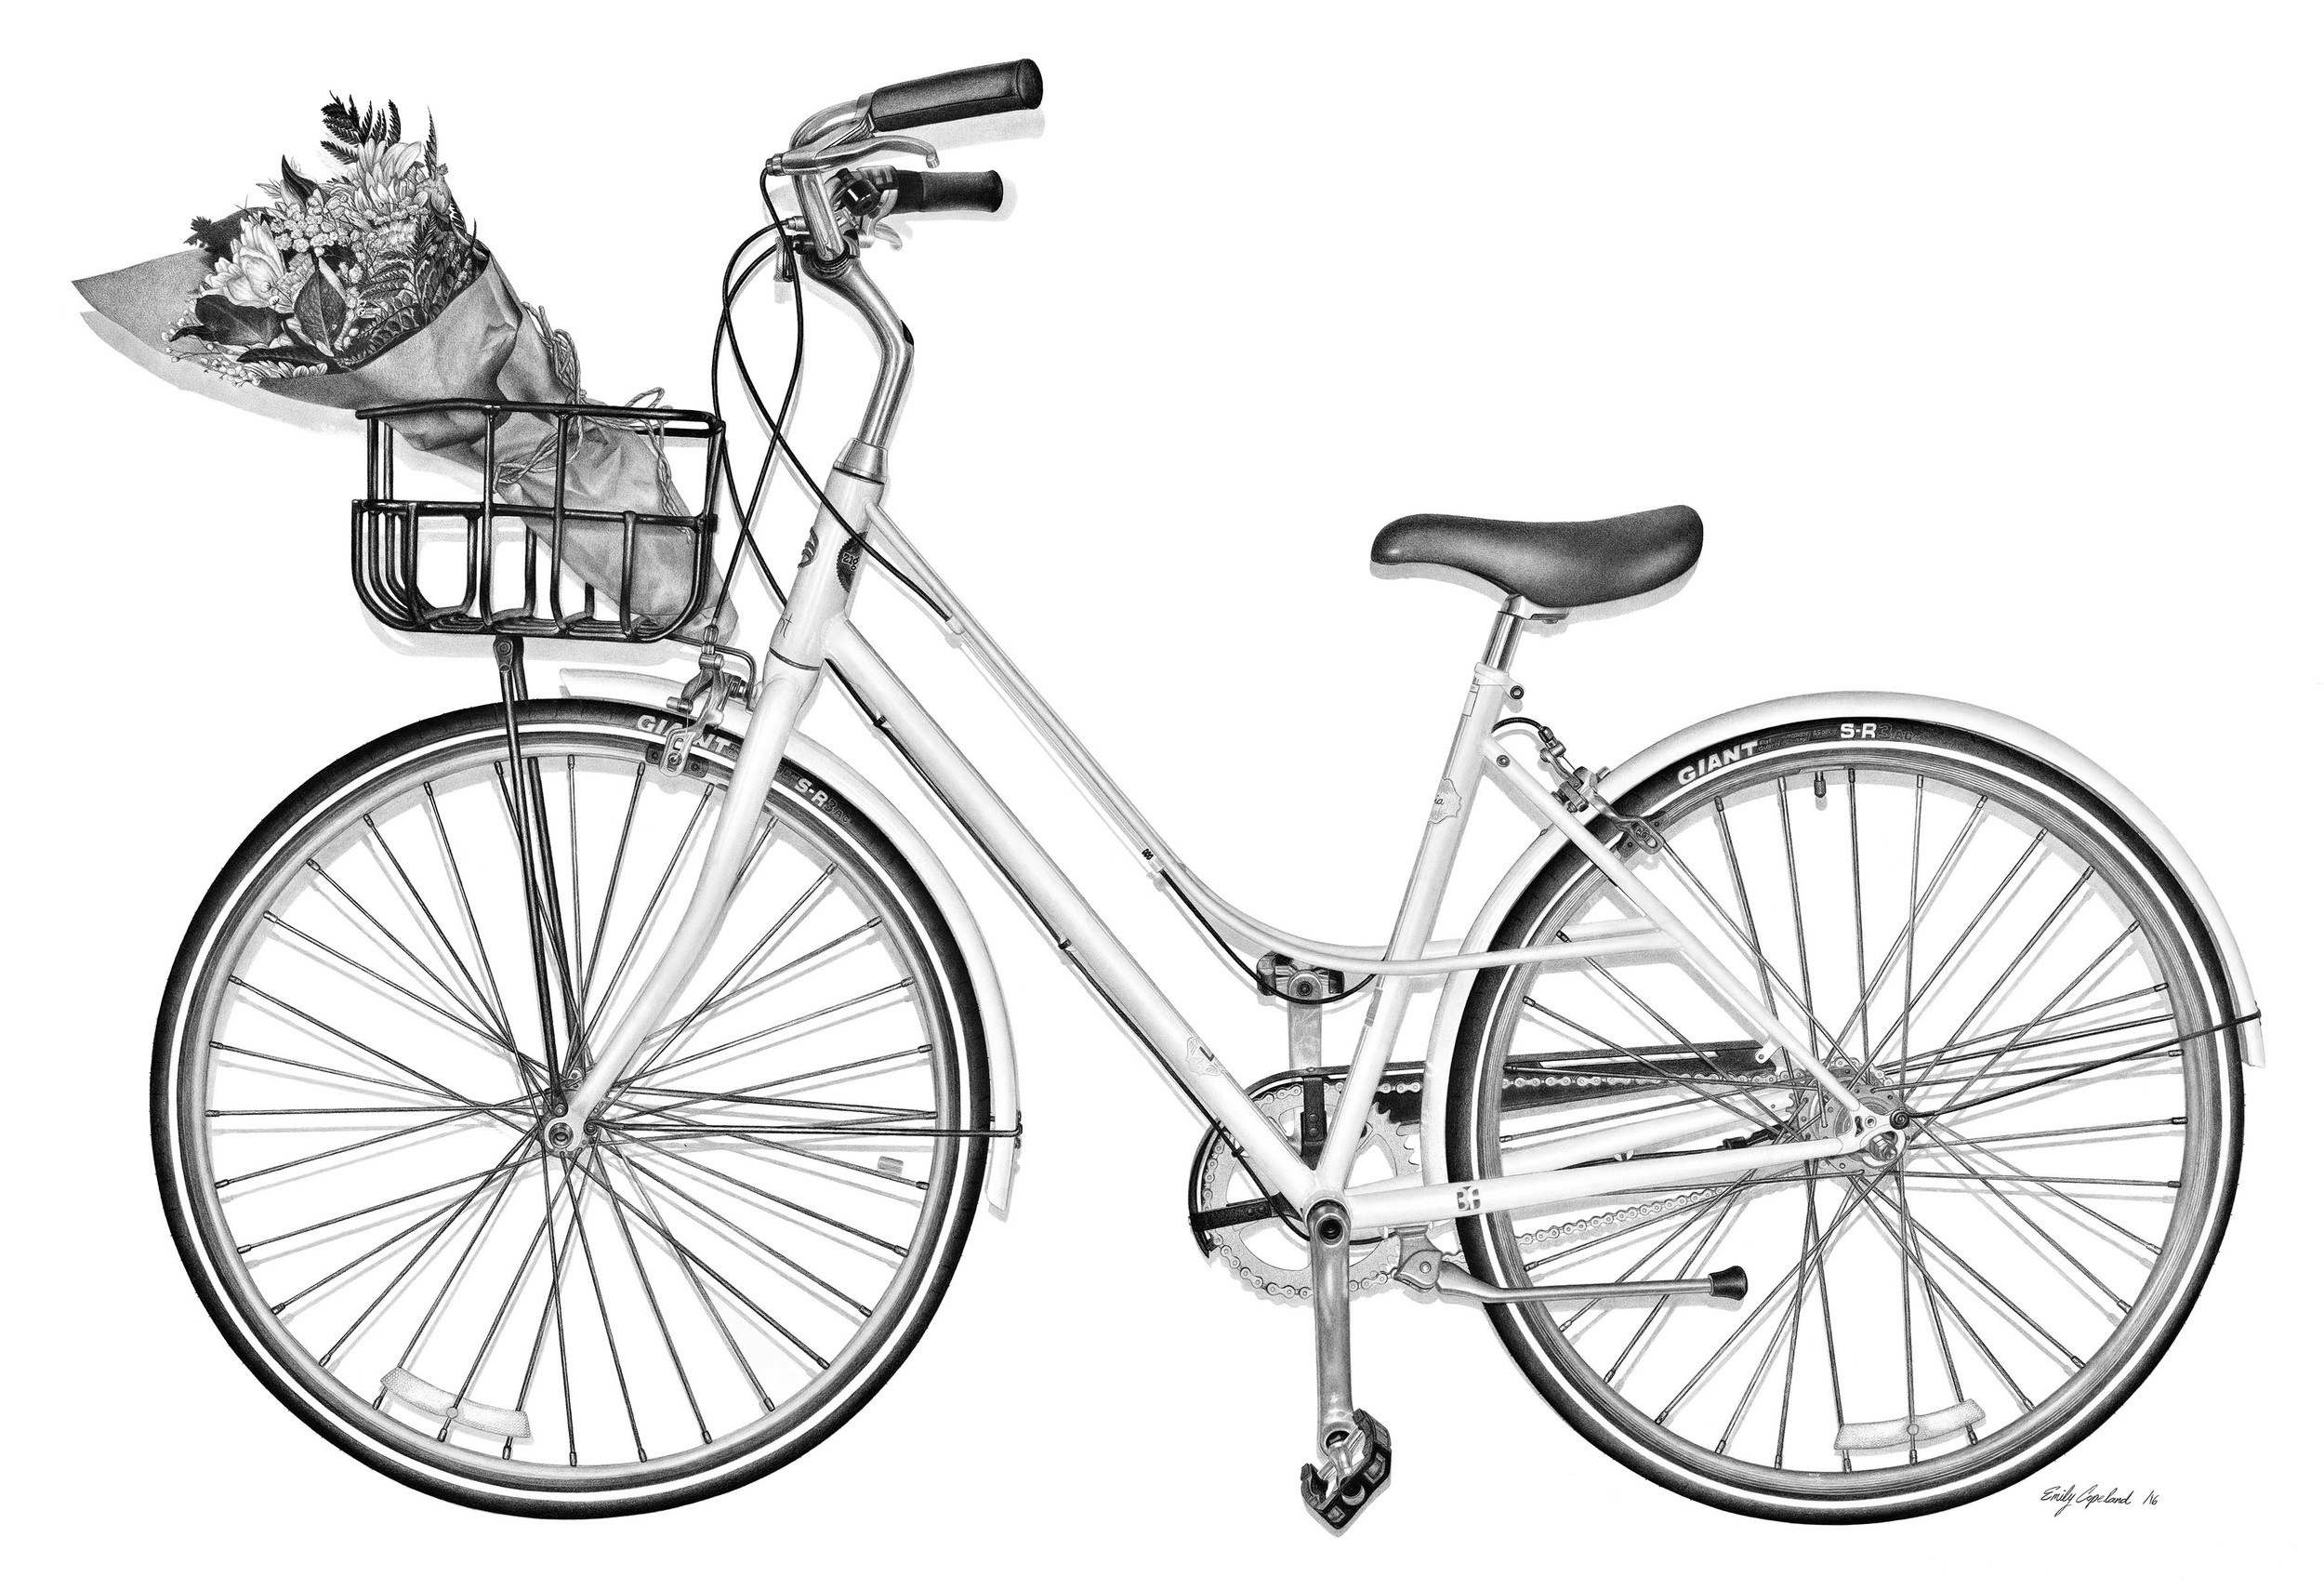 Charcoal Drawing of a Vintage Styled Bike